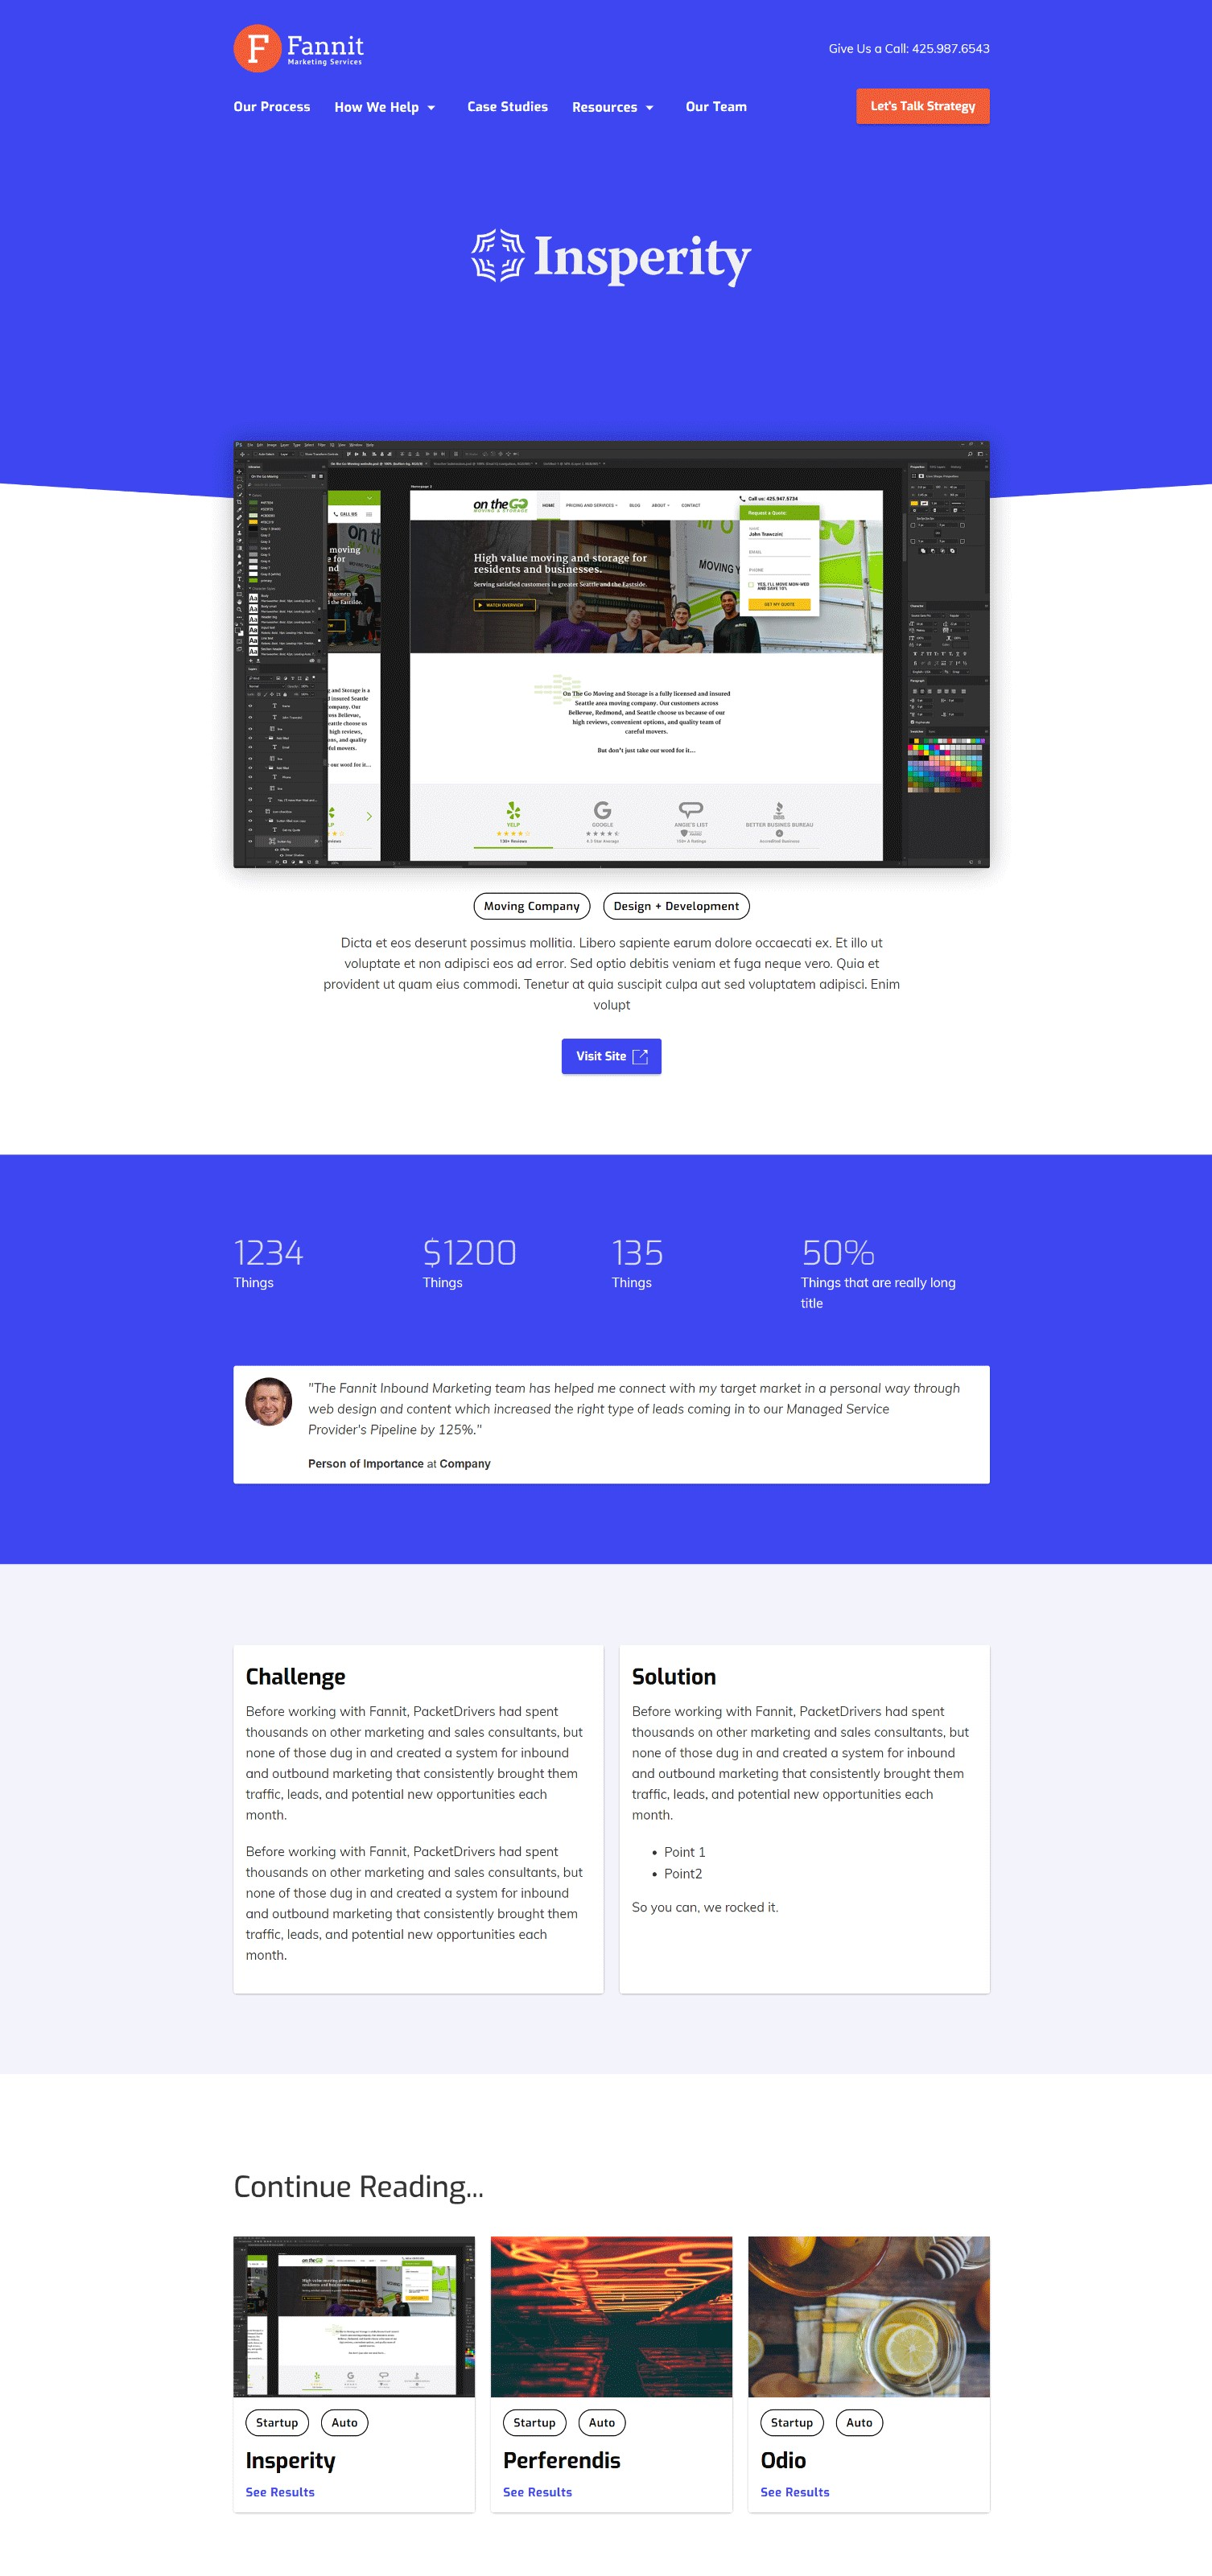 fannit case study design